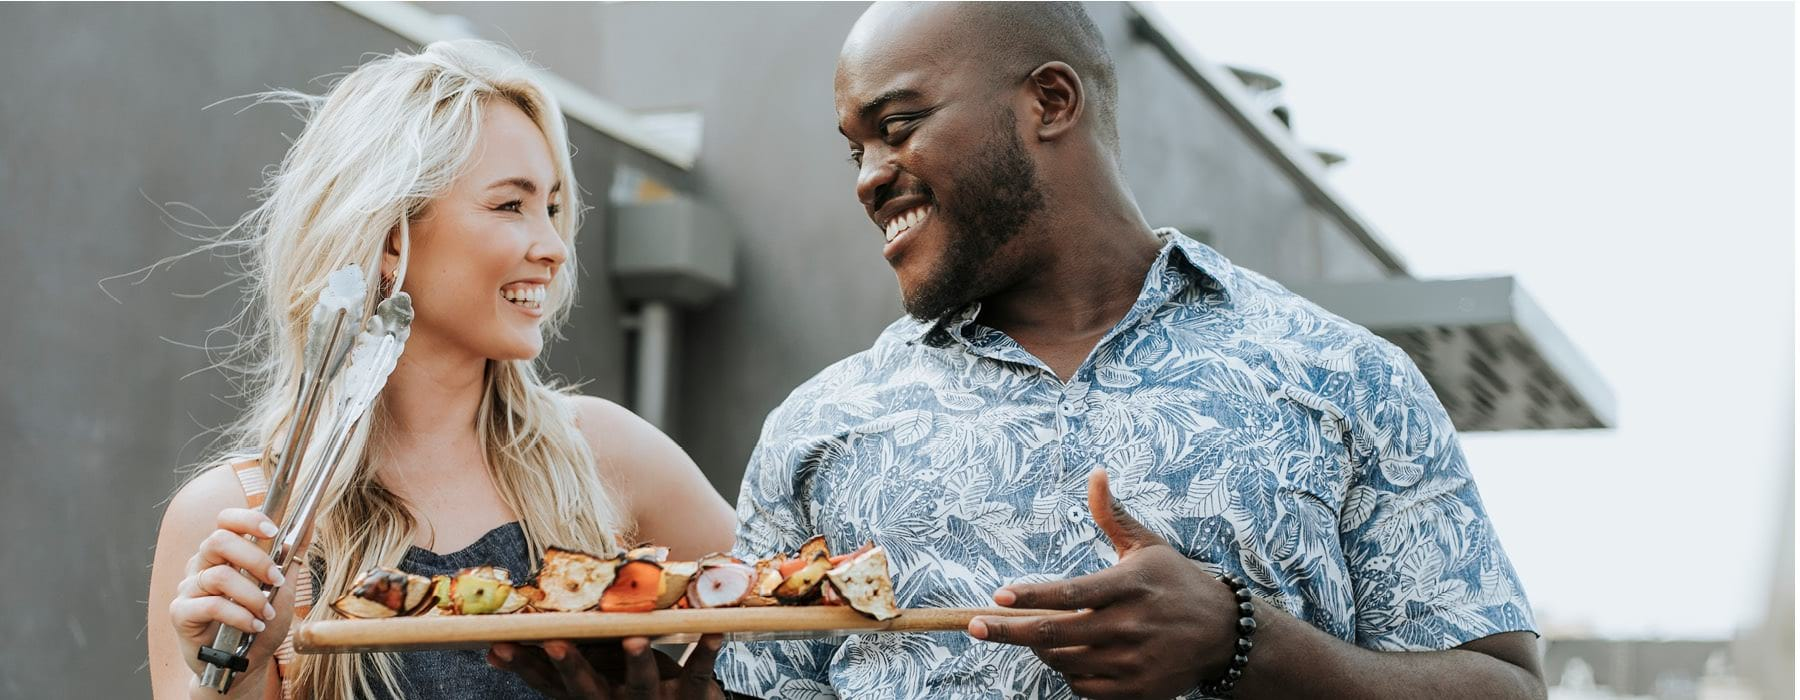 man and woman smile at each other while holding a cutting board of kabobs and grilling tongs